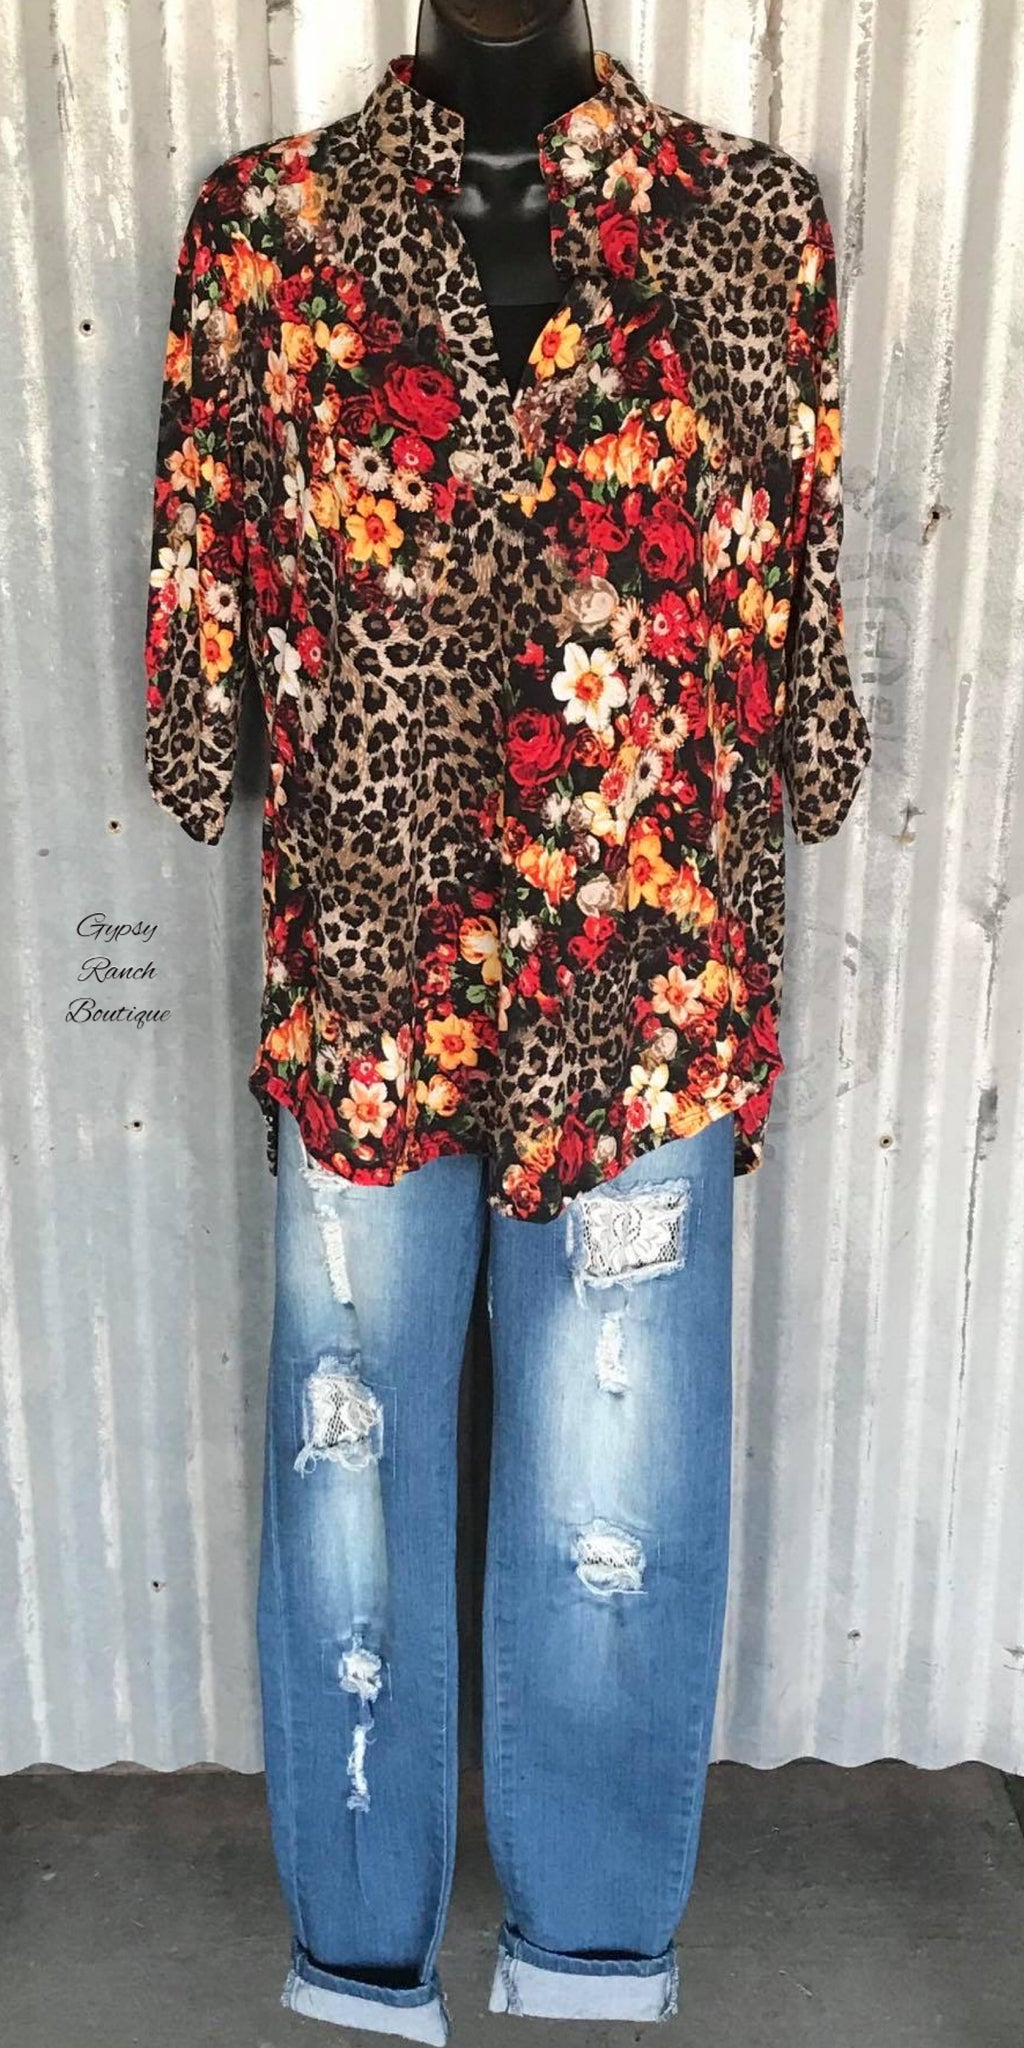 Moran Leopard Floral Top - Also in Plus Size